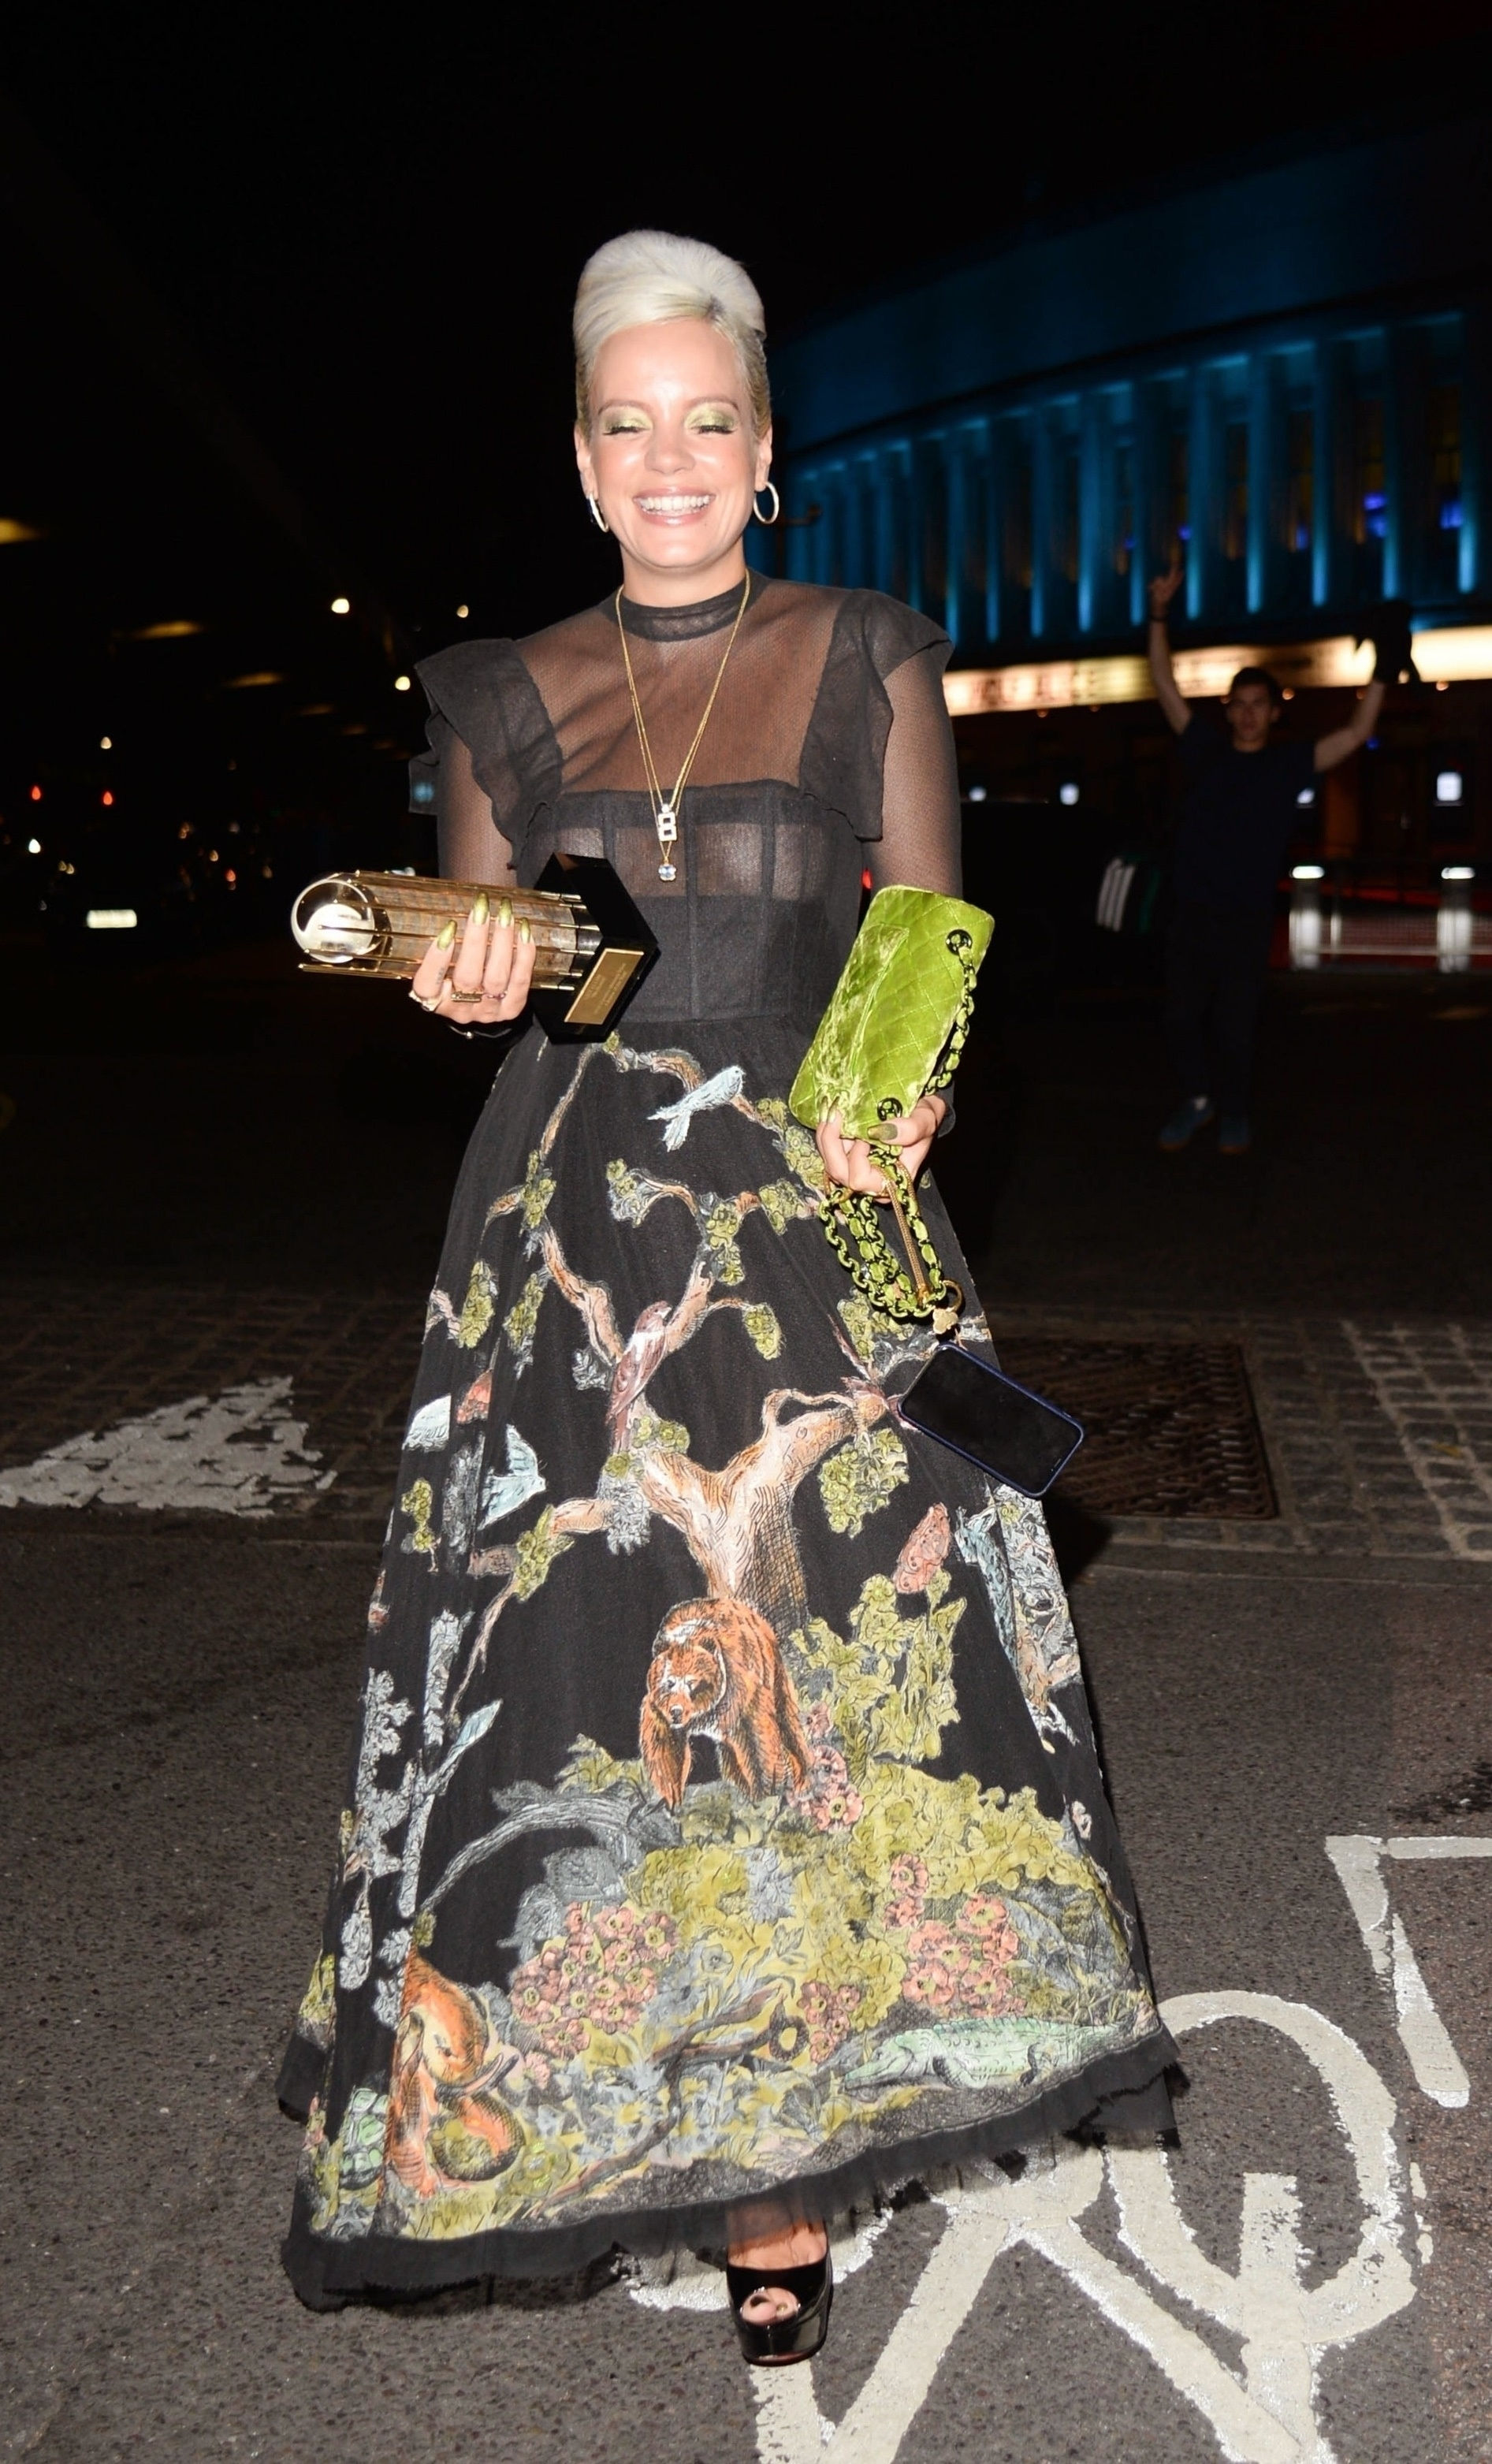 0919040453772_19_Lily-Allen-See-Through-TheFappeningBlog.com-20.jpg